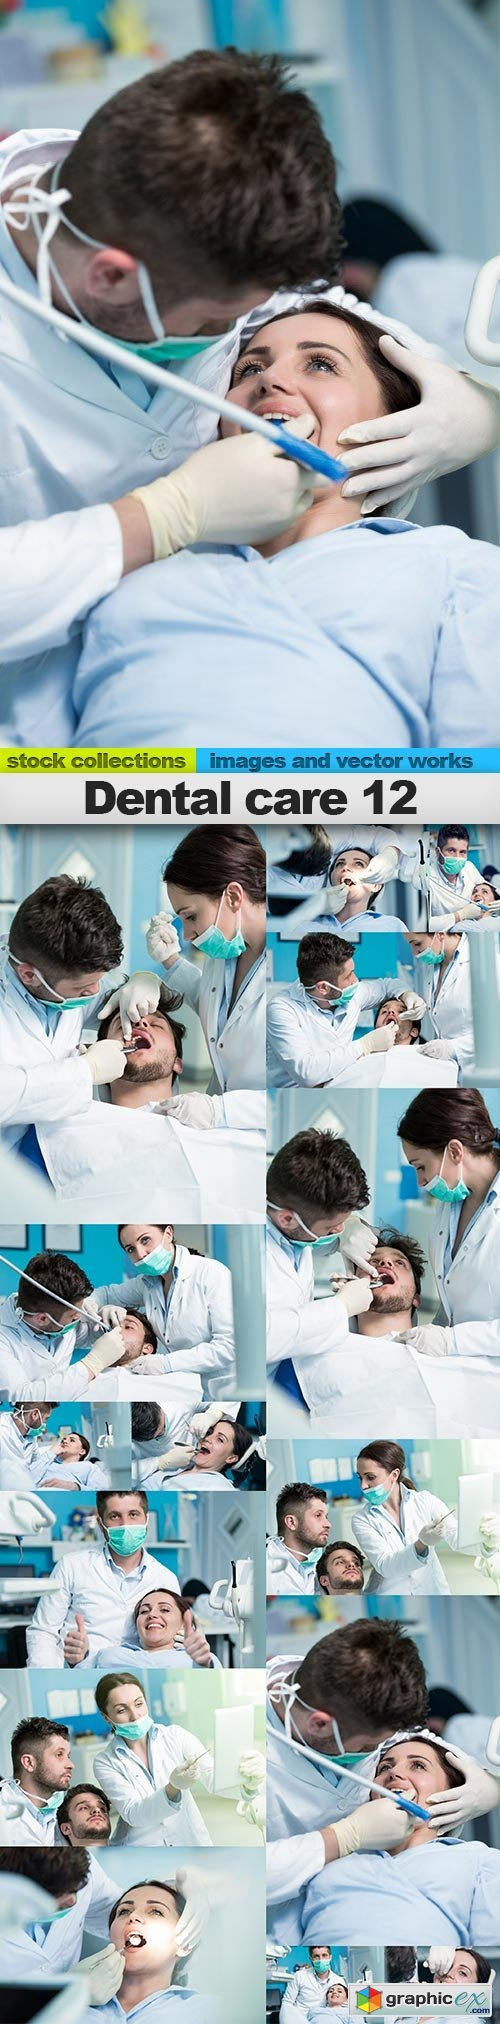 Dental care 12, 15 x UHQ JPEG